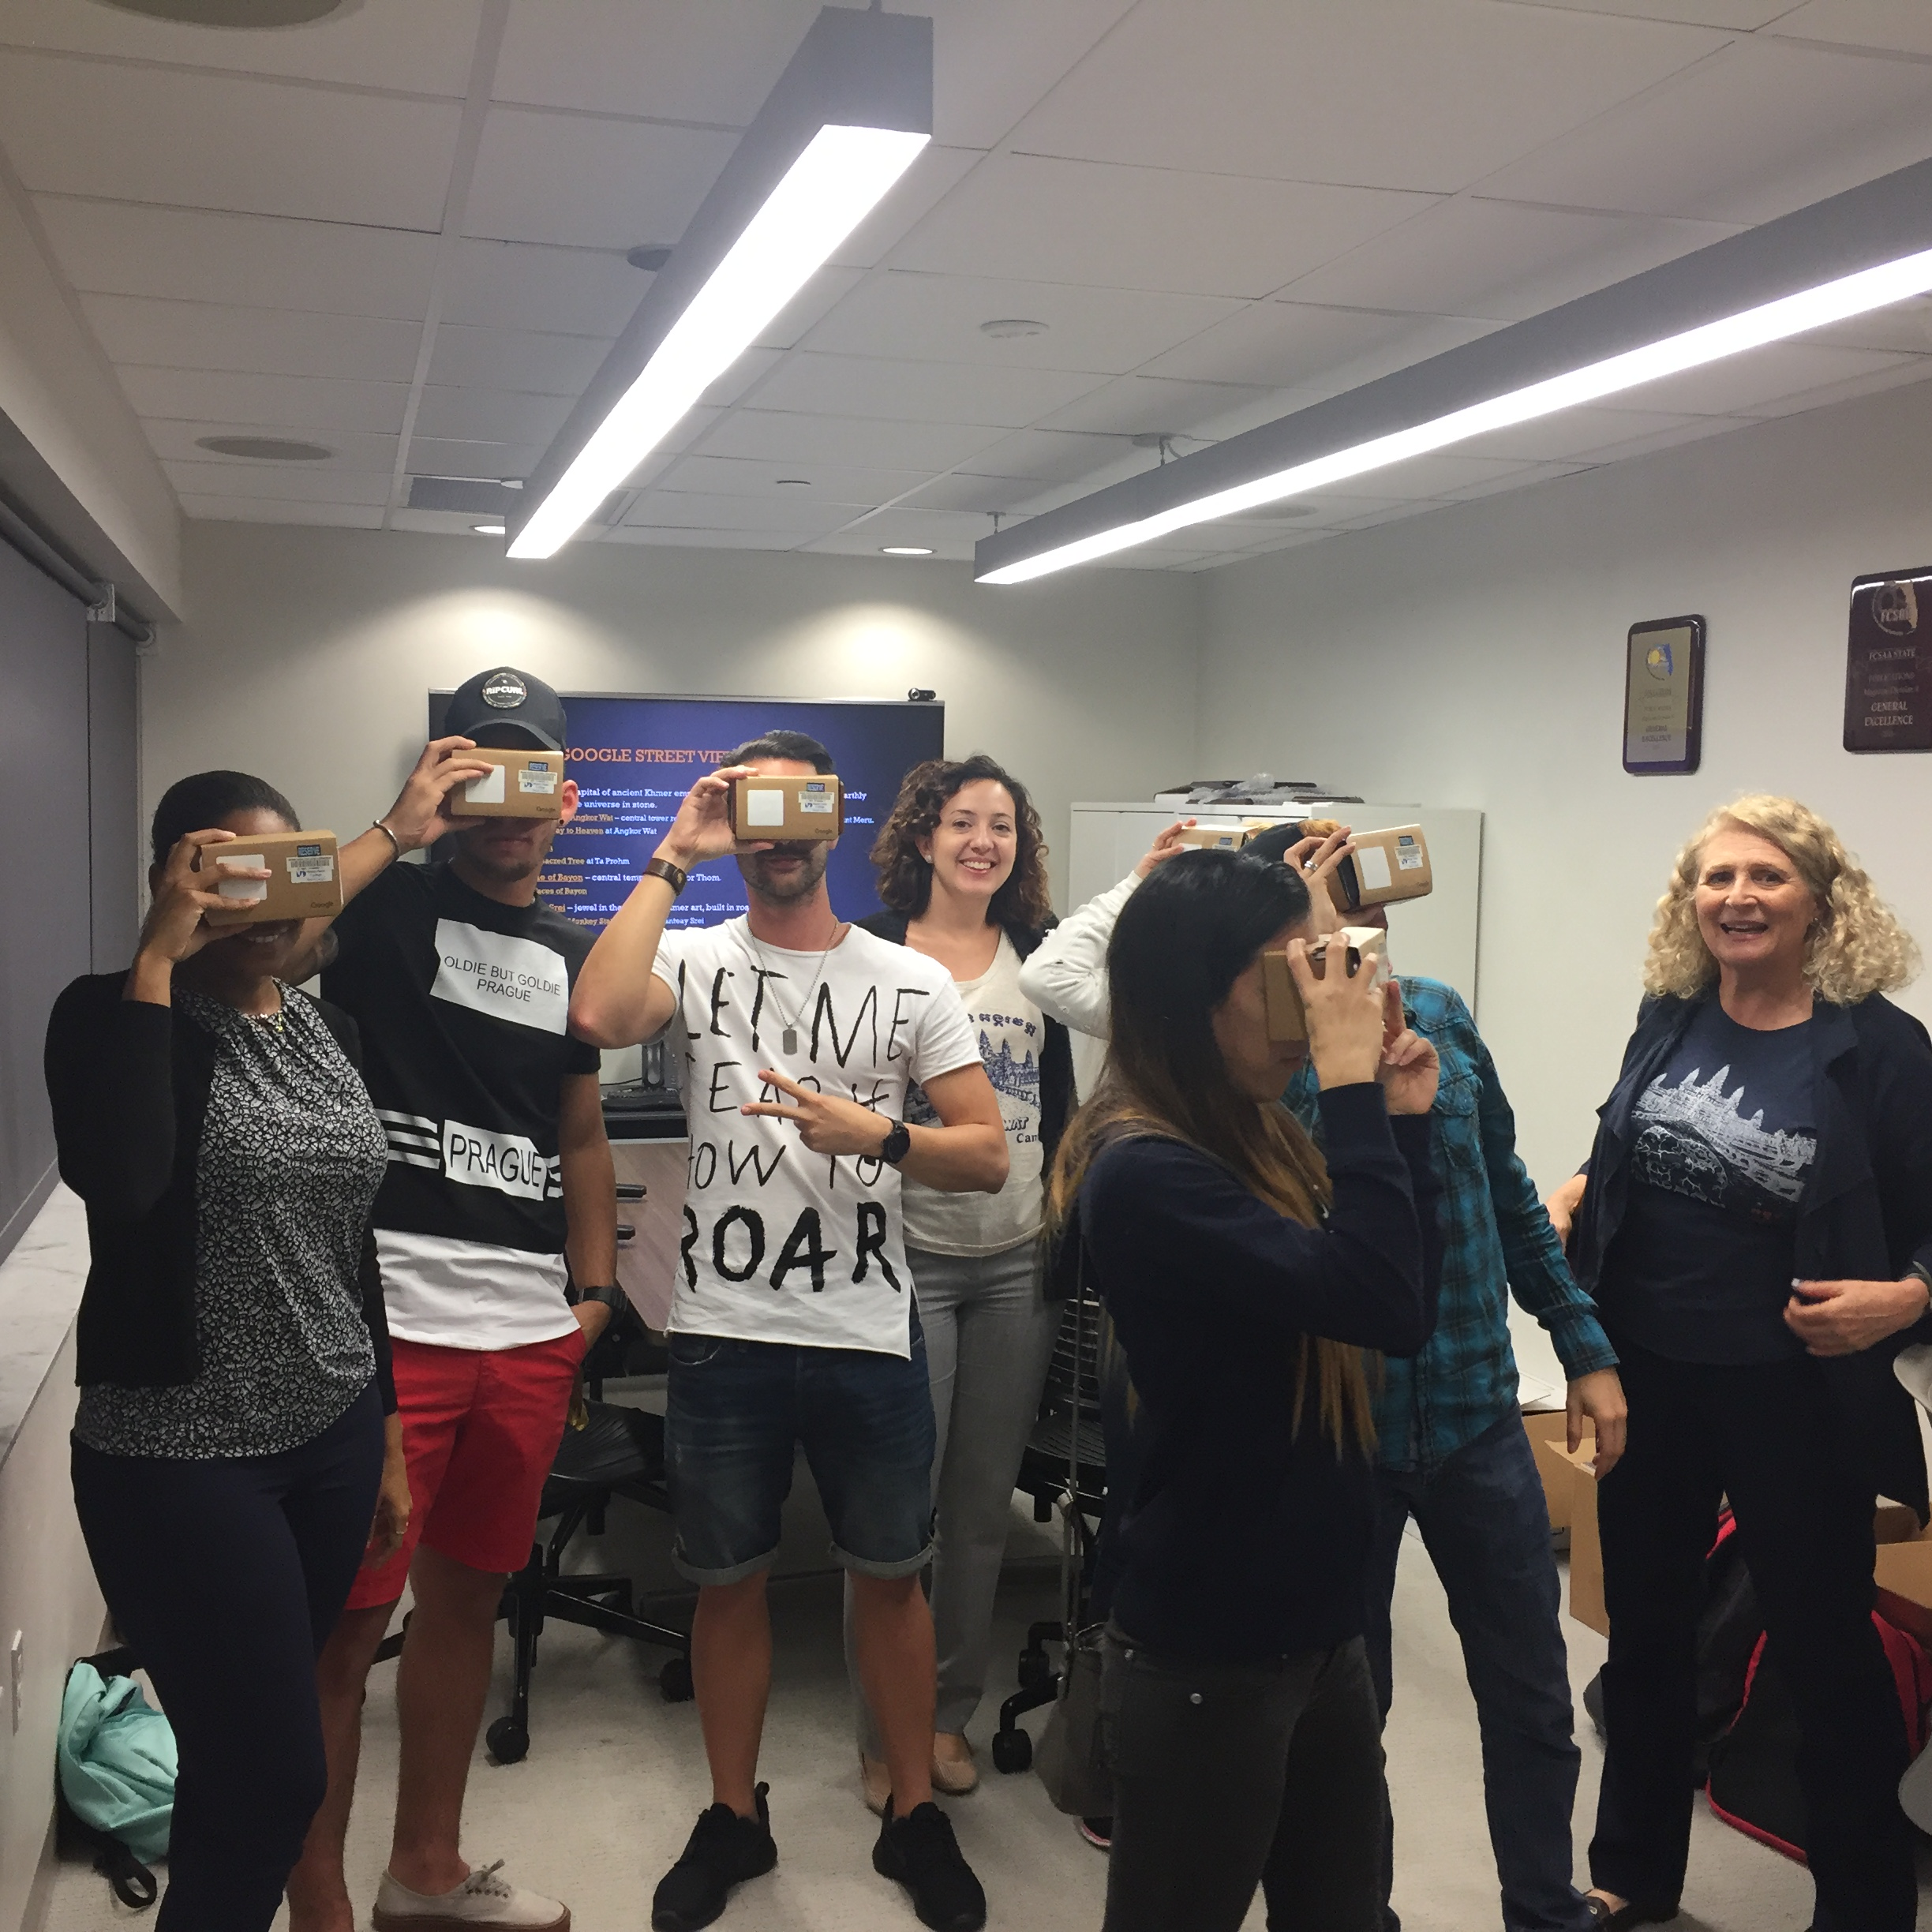 Students using Google Cardboard VR to visit Cambodia